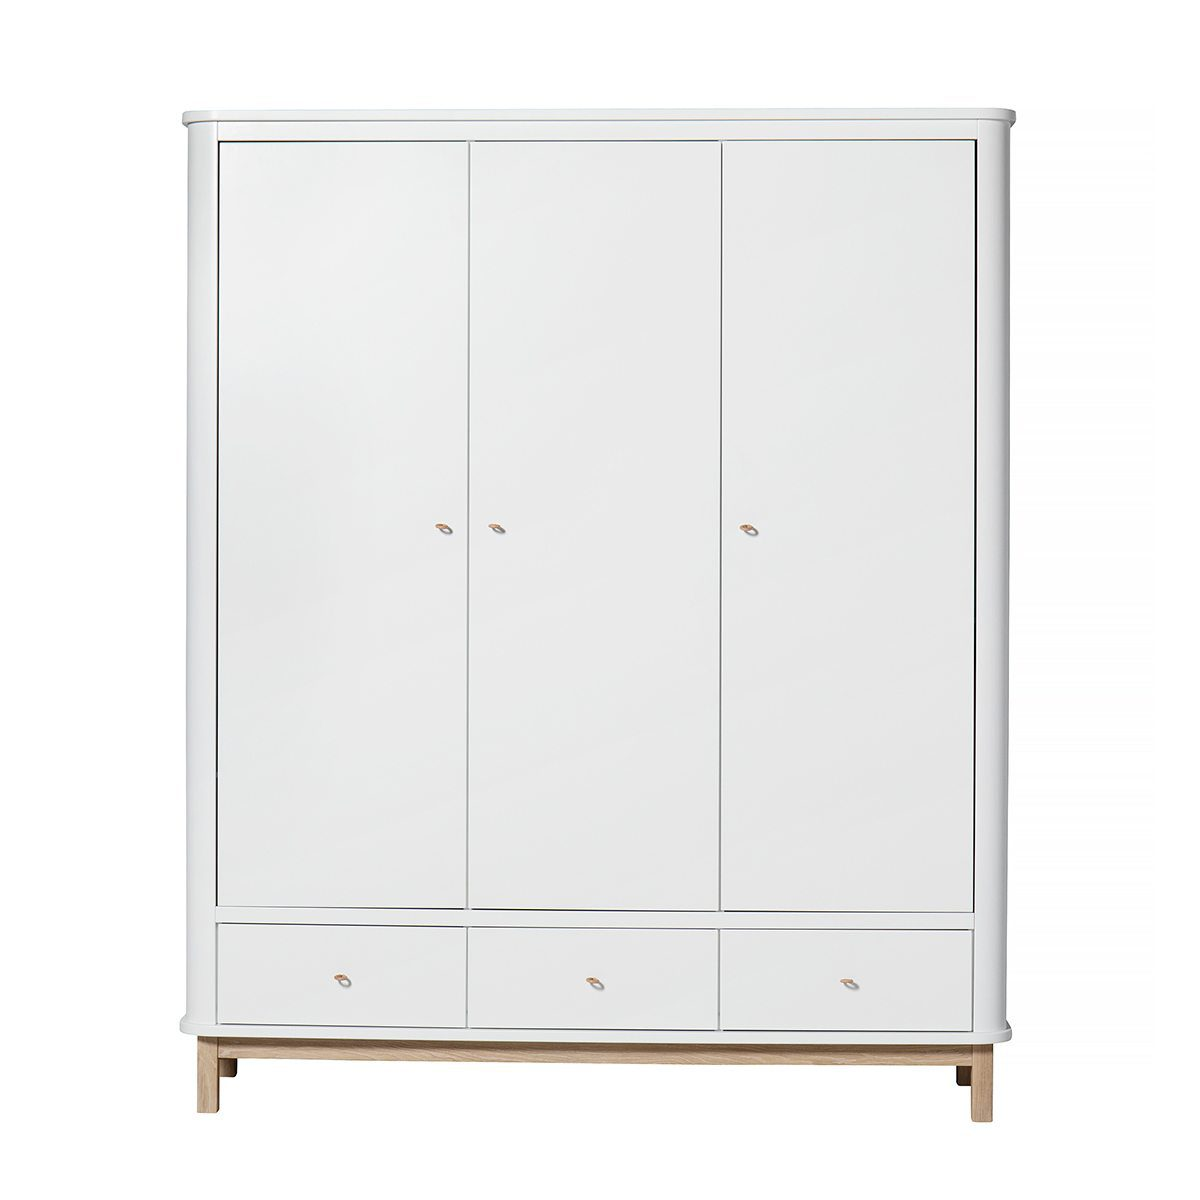 Oliver Furniture Kinderkledingkasten Wood white oak 3 deuren